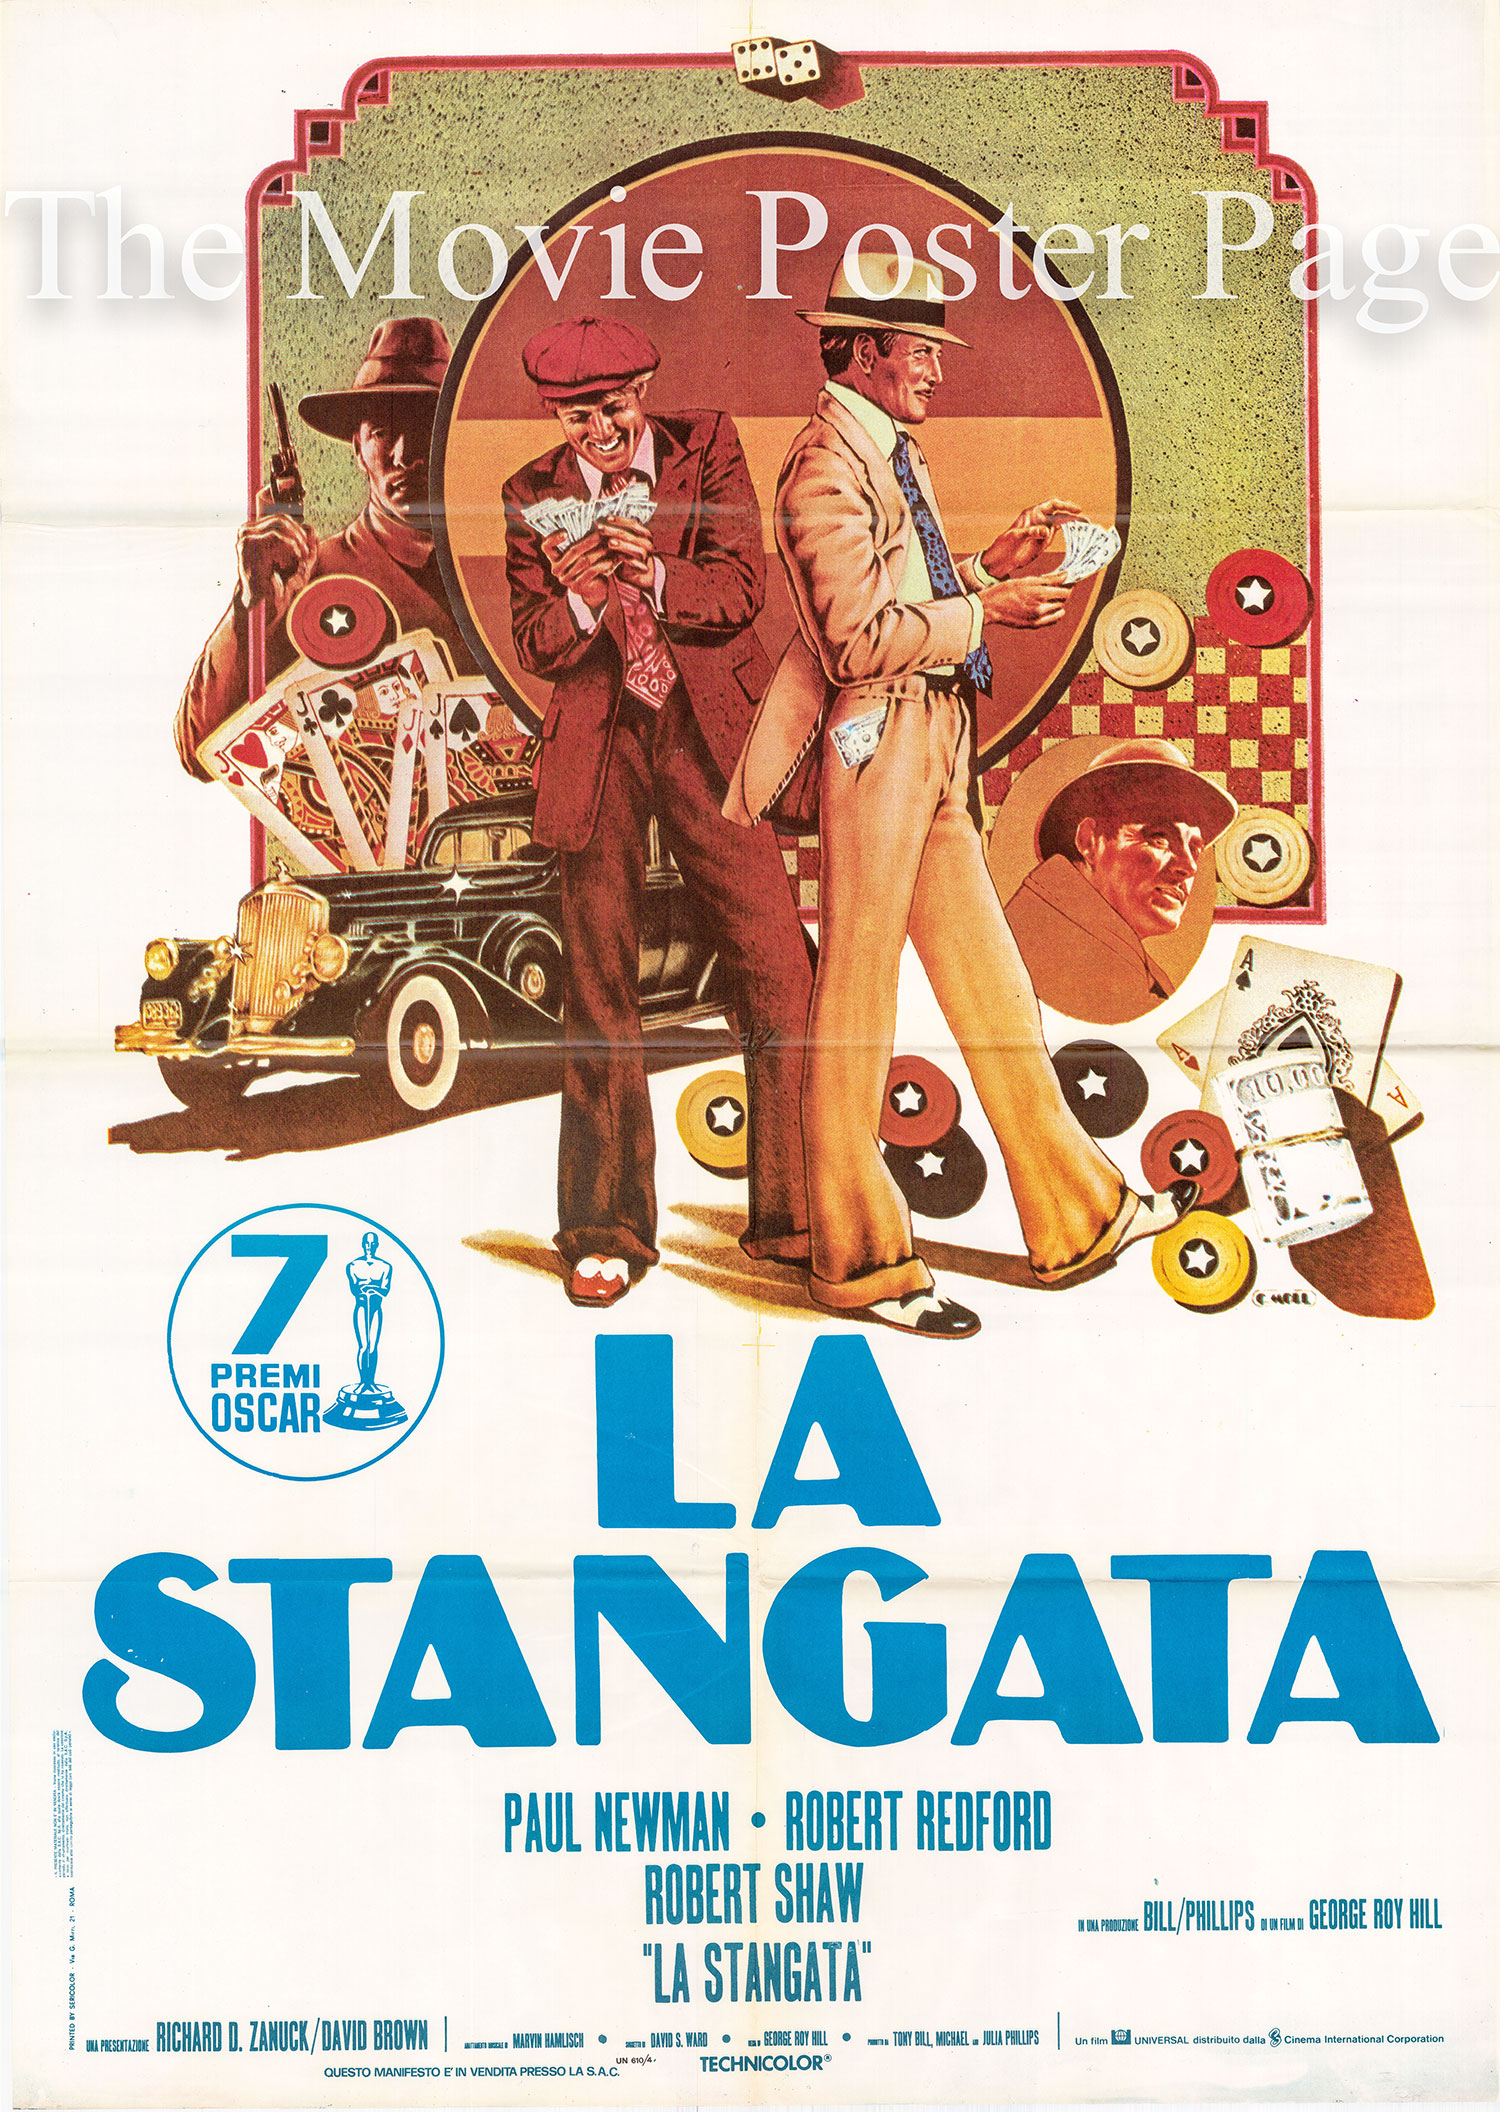 Pictured is an Italian two-sheet promotional poster for the 1975 George Roy Hill film <i>The Sting</i> starring Paul Newman.